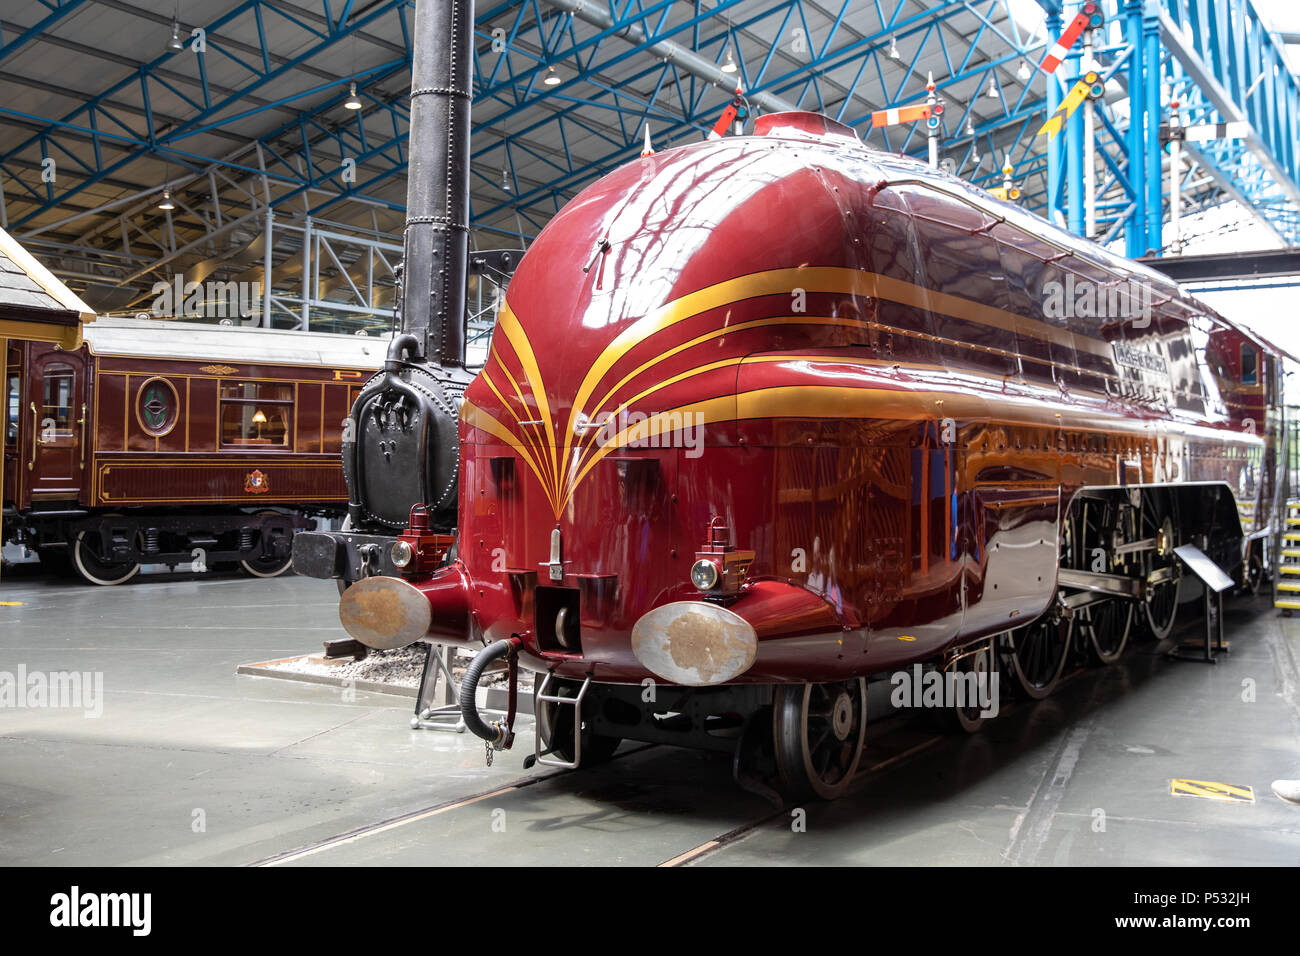 The National Railway Museum, York, England - Stock Image